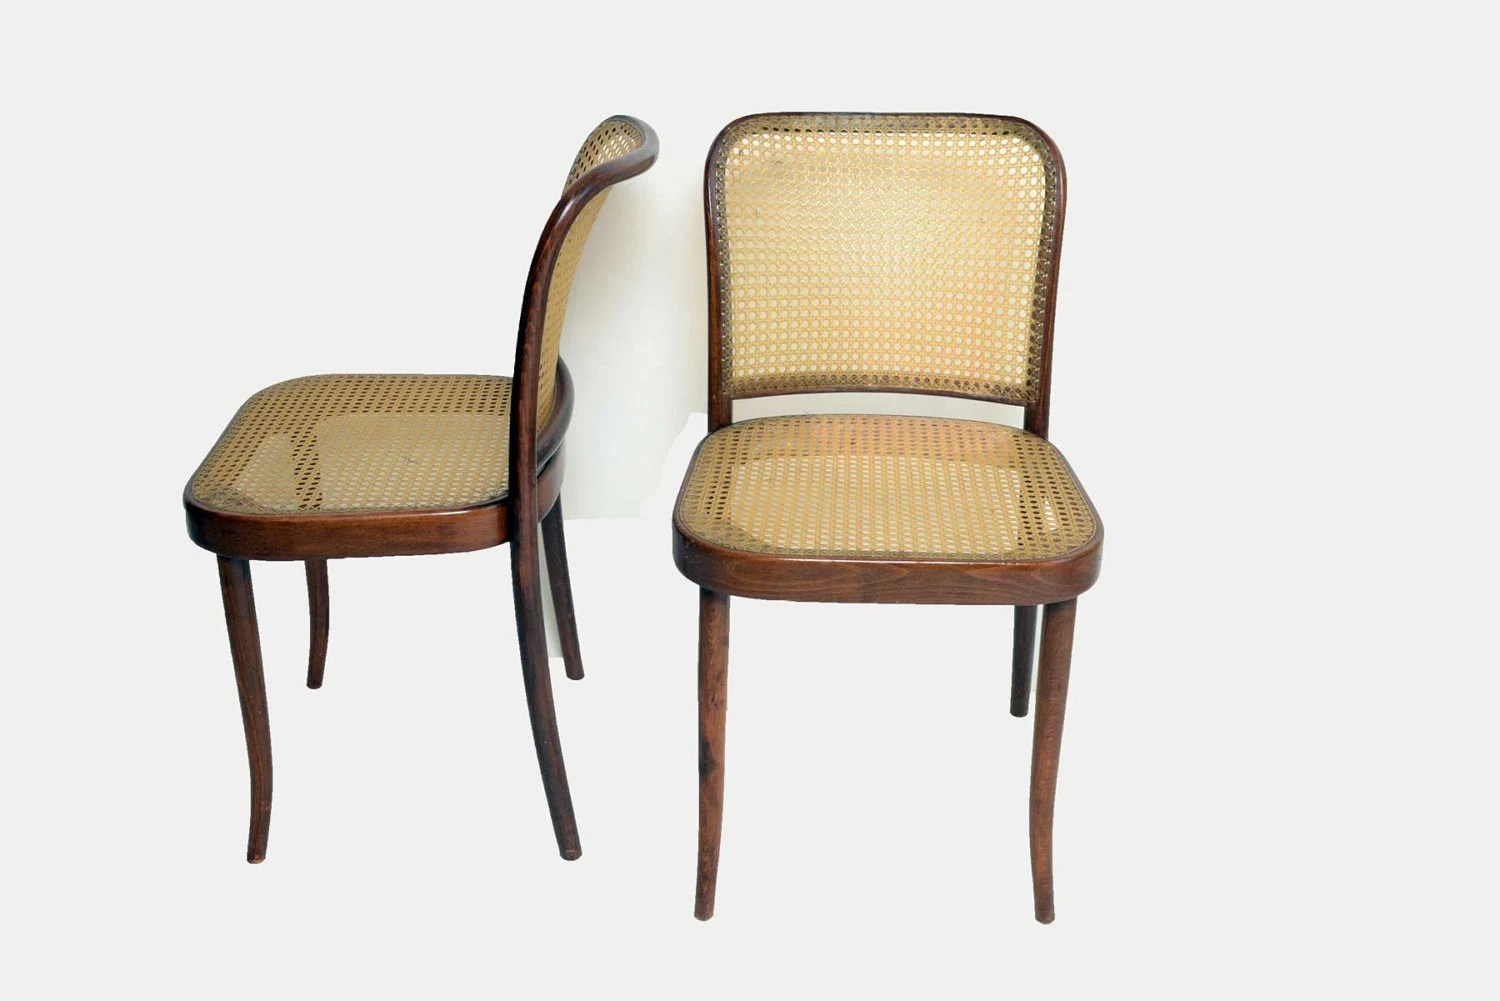 Cane Dining Chairs 6 Thonet Bentwood Cane Dining Chairs 1950 1960 Mid Century